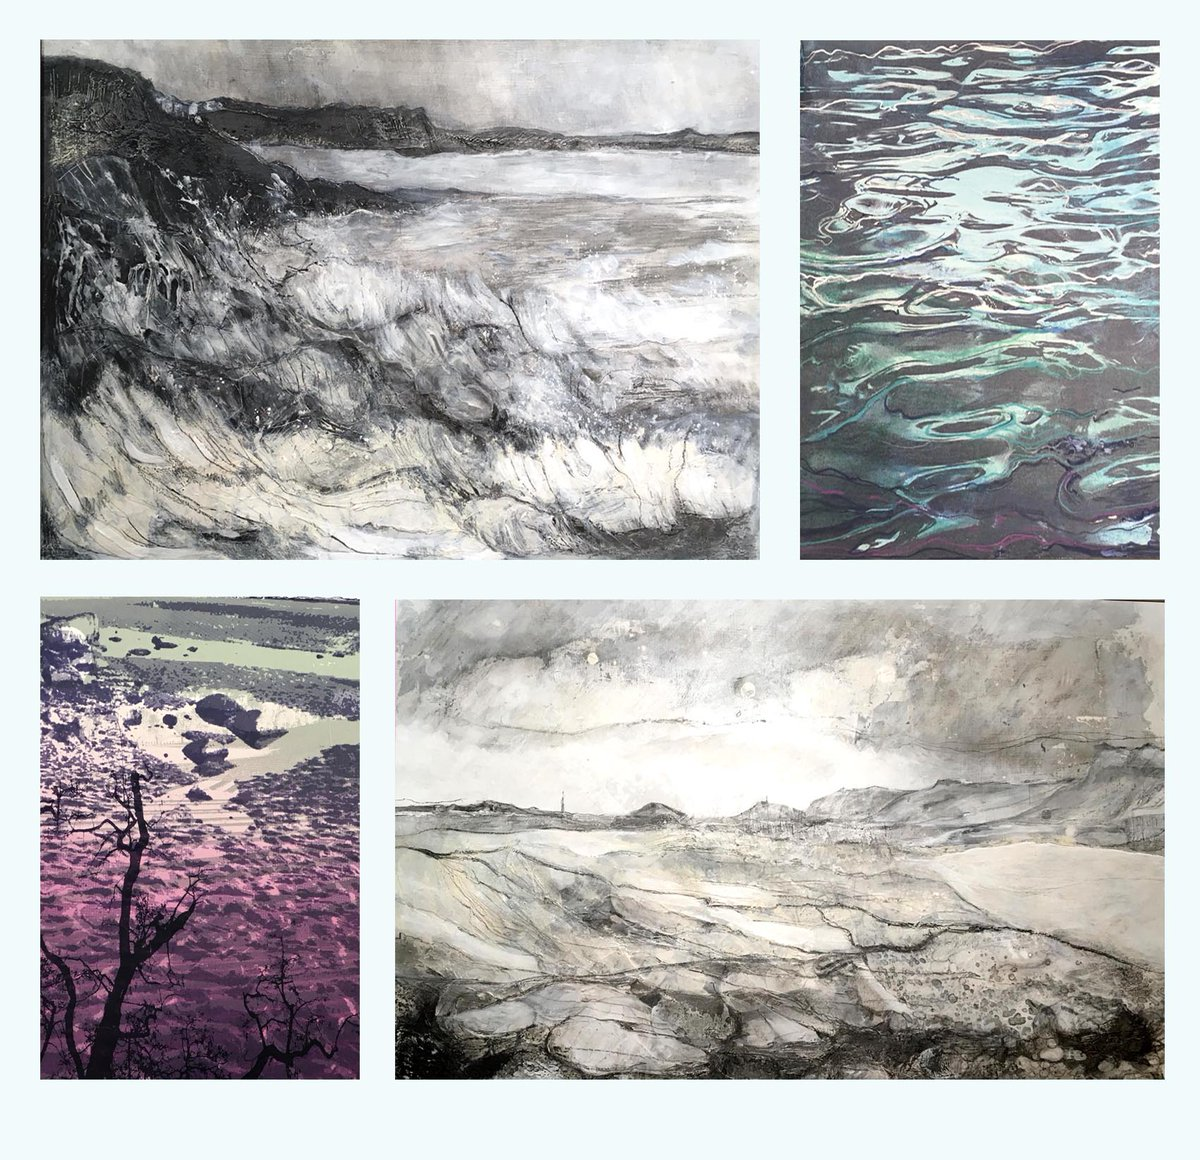 Just as well I have made #water a feature of my work for the past 6 months- I have seen a lot of it still fascinates me though #screenprinting #painting #drawing #gesso #graphite #seascape #landscape #art might start looking at #Thunderstorms